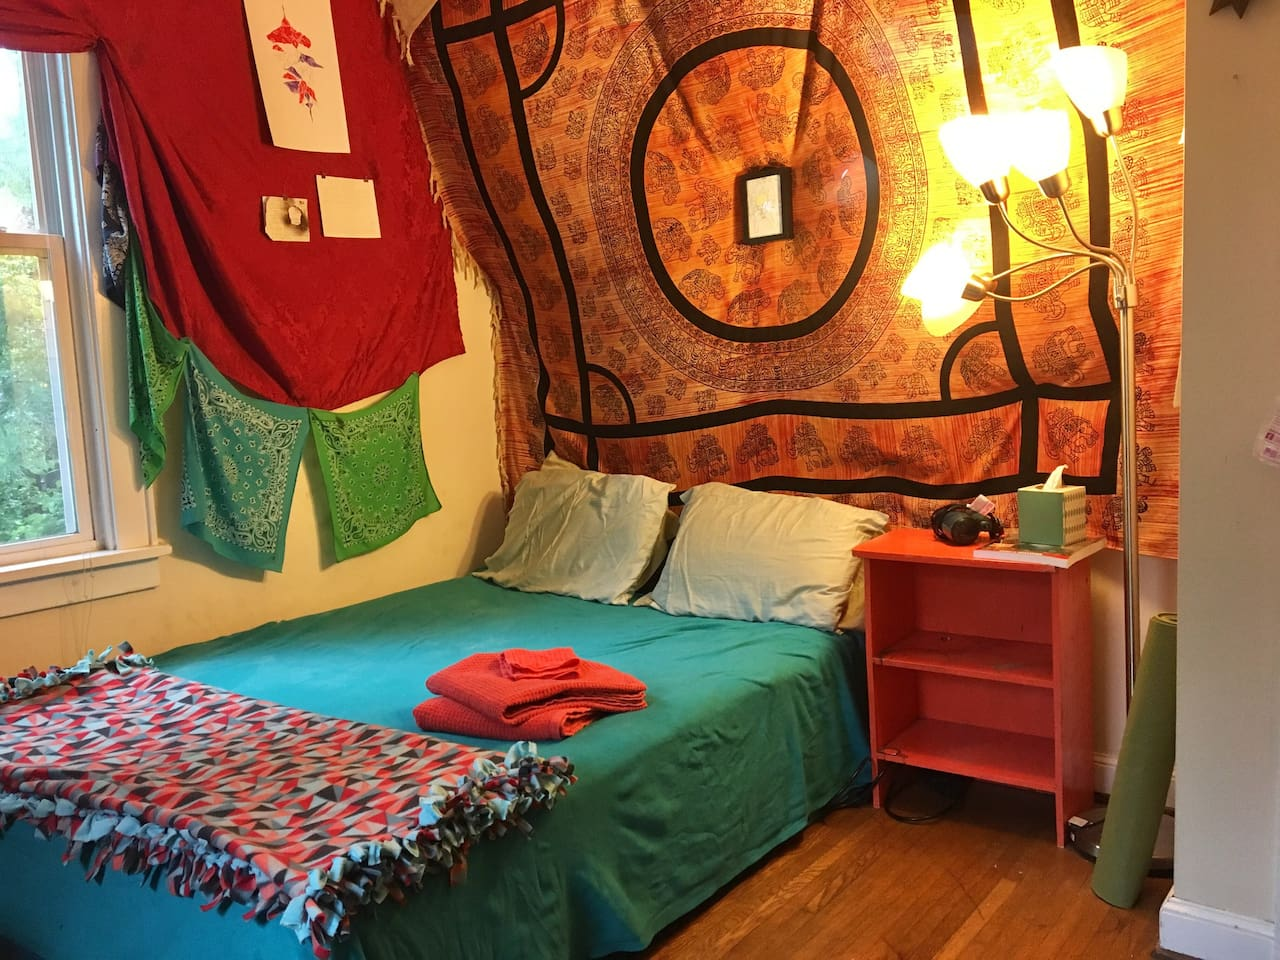 """Full sized bed with lamp and nightstand. The room is bright with a lot of personality. There's a hairdryer and a book of local day-hikes on the nightstand. There is also a yoga mat and (if you are around 5'4"""") a bike you can use during your stay (not pictured here)."""